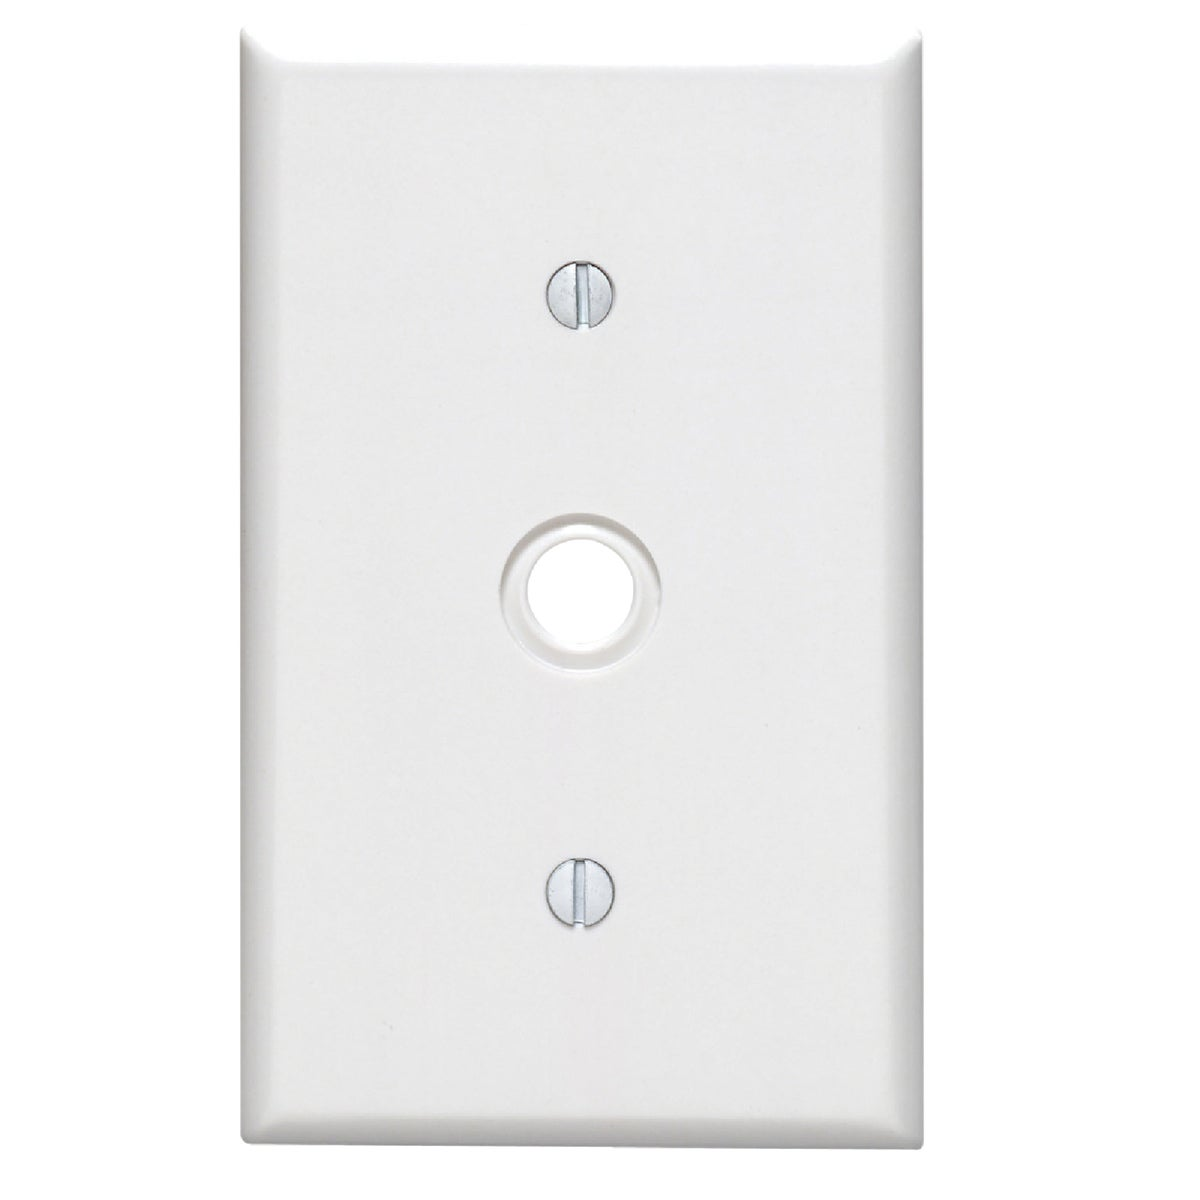 WHT PHONE WALL PLATE - 88018 by Leviton Mfg Co